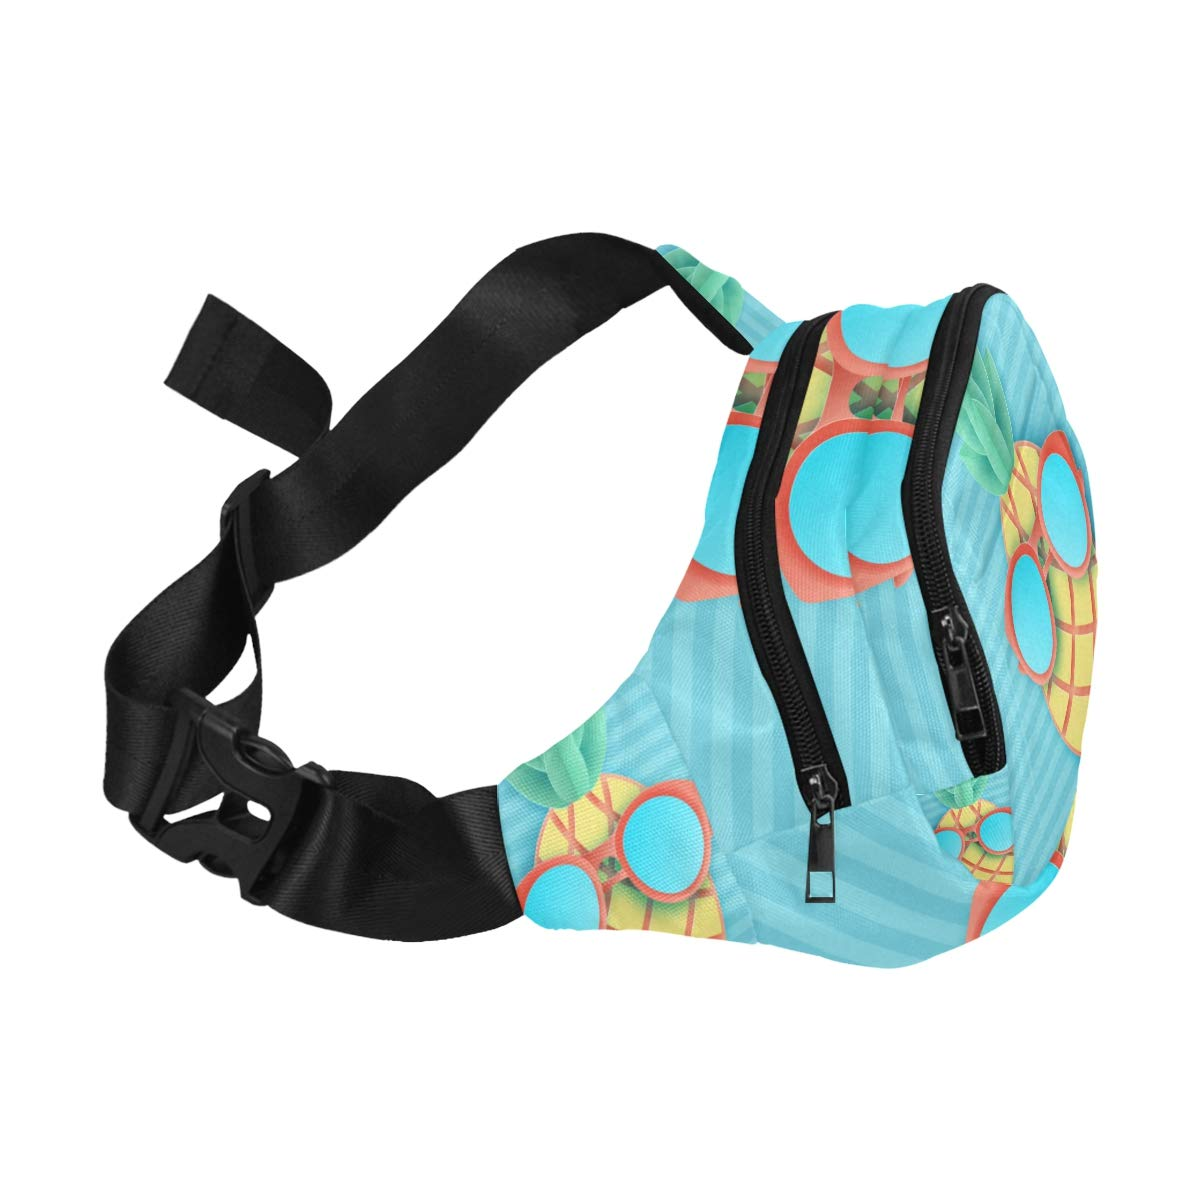 The Sun And Hibiscus Stripes Fenny Packs Waist Bags Adjustable Belt Waterproof Nylon Travel Running Sport Vacation Party For Men Women Boys Girls Kids